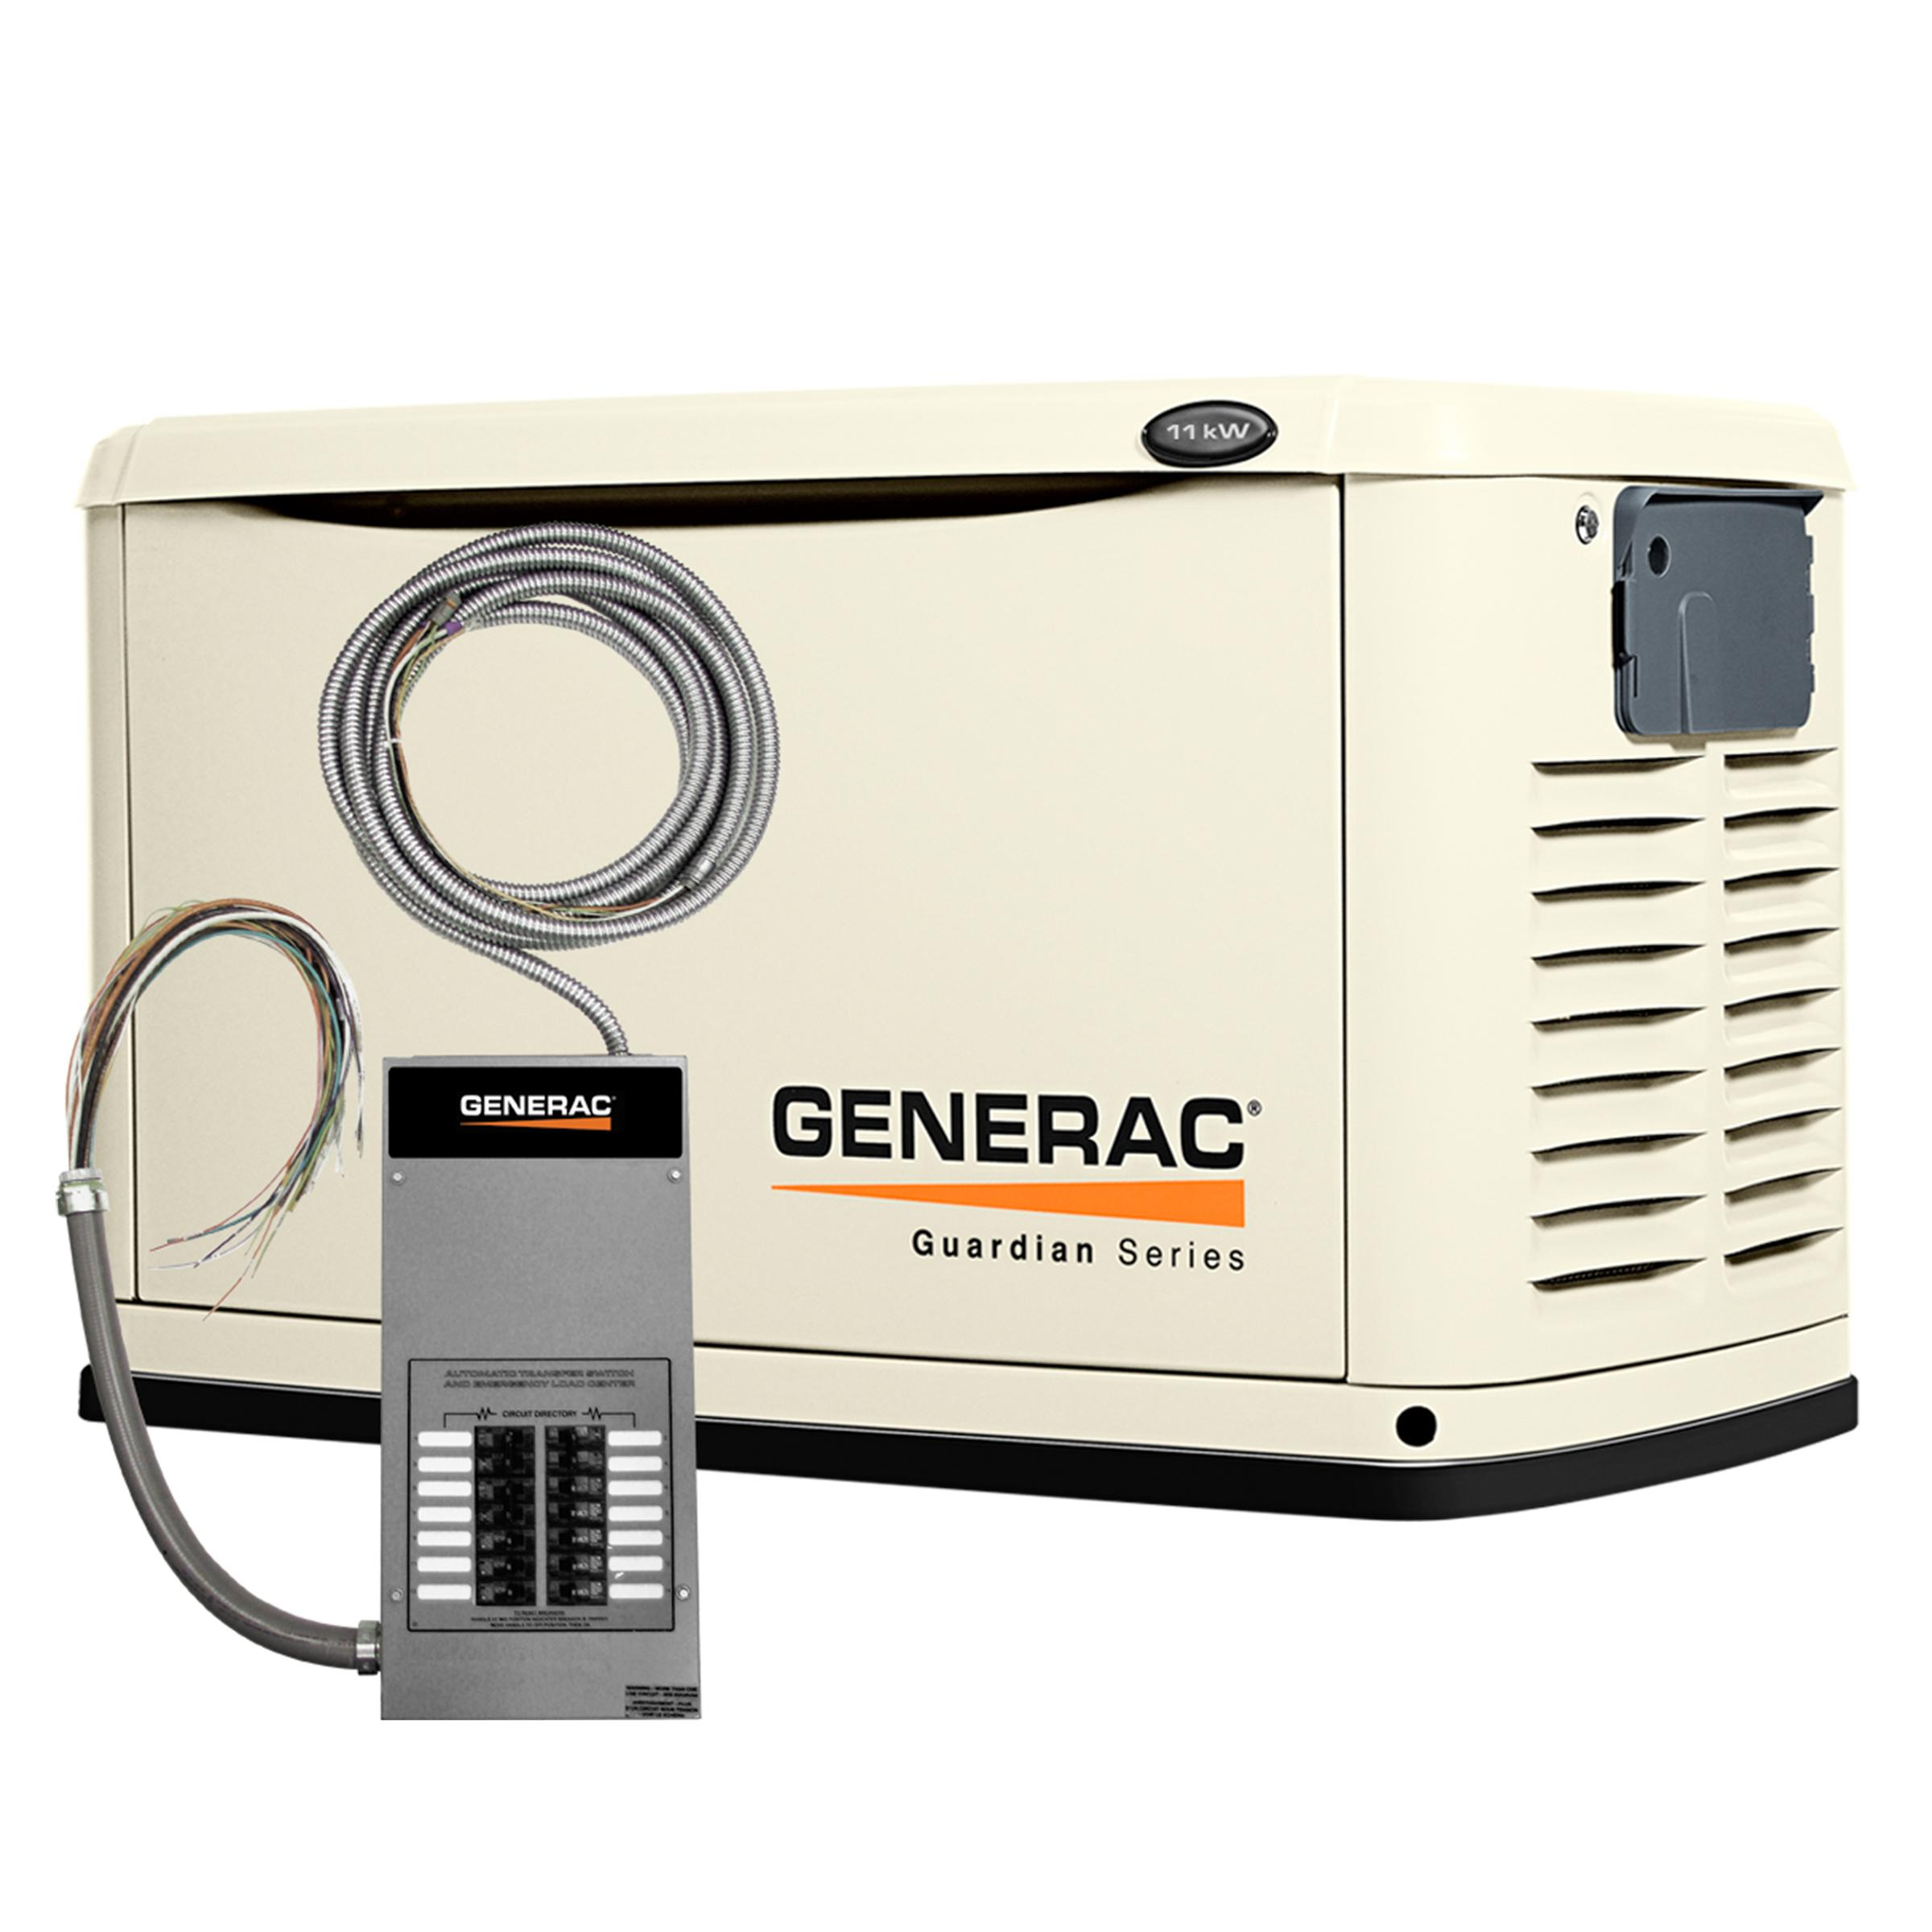 Generac 7030 Guardian Series 9kw 8kw Air Cooled Home Standby For A Back Up Generator Wiring With 16 Circuit 100 Amp